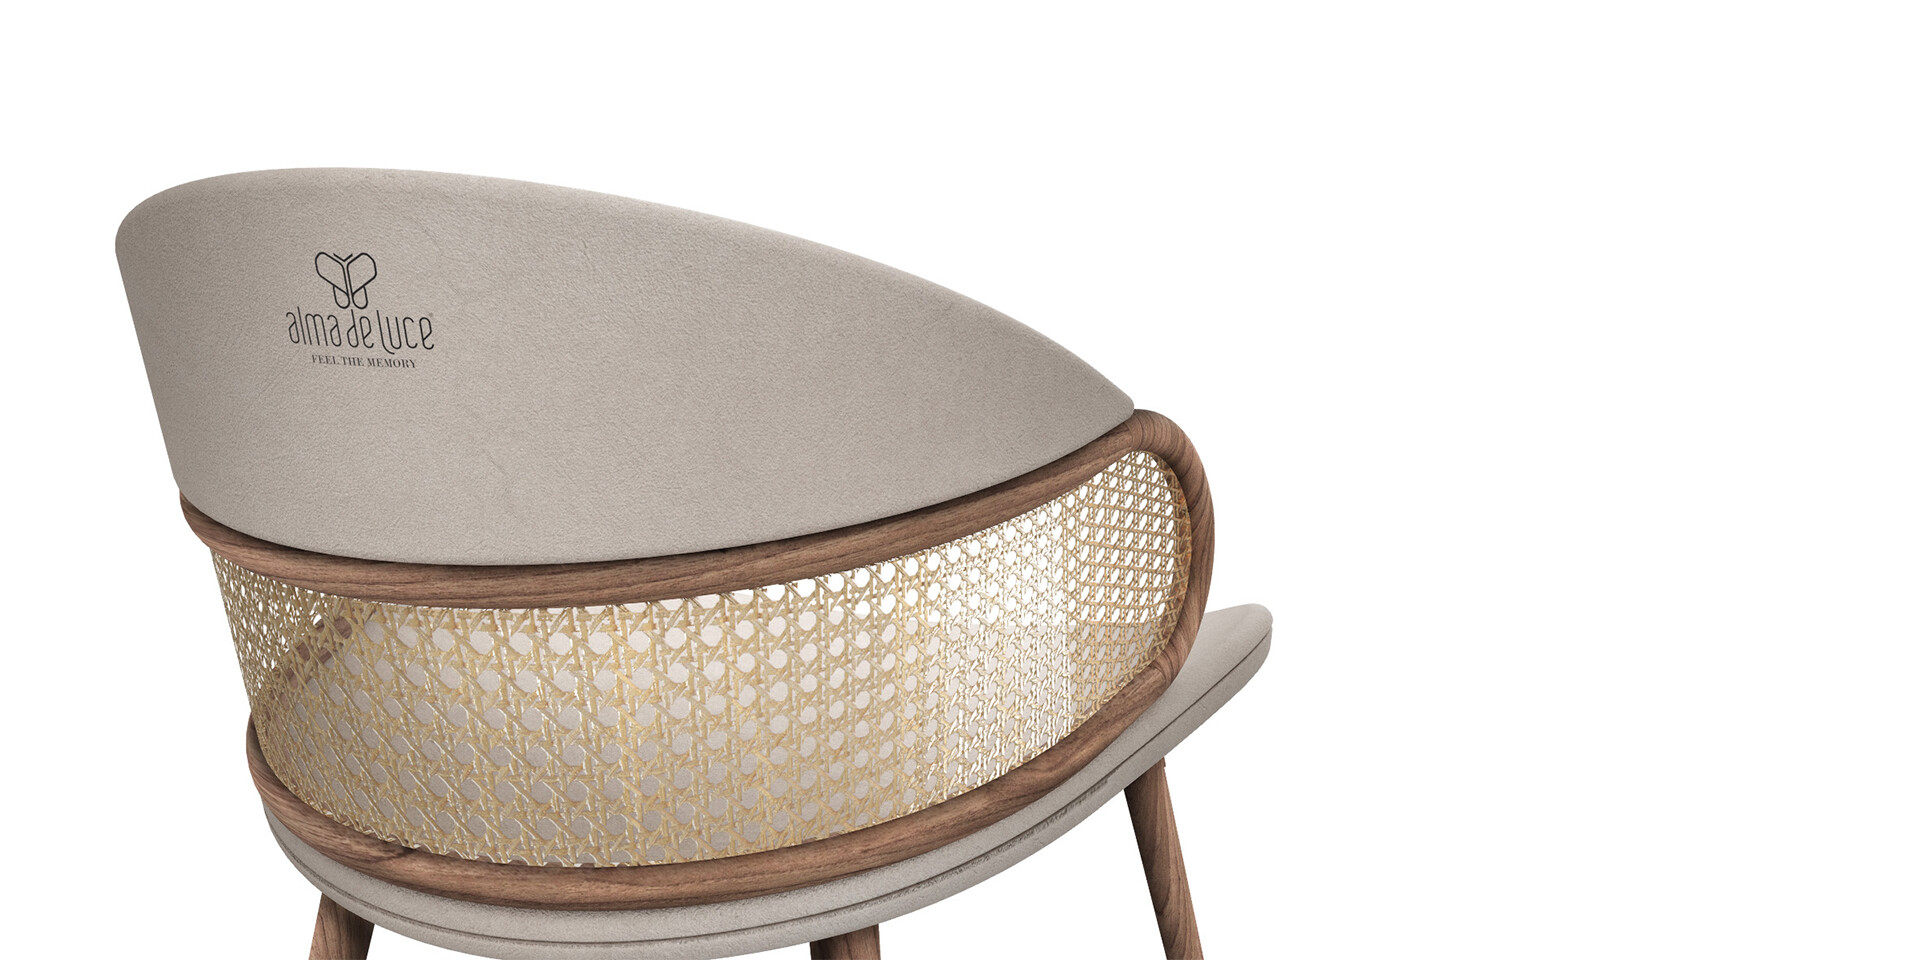 MUDHIF DININD CHAIR back side view ALMA de LUCE